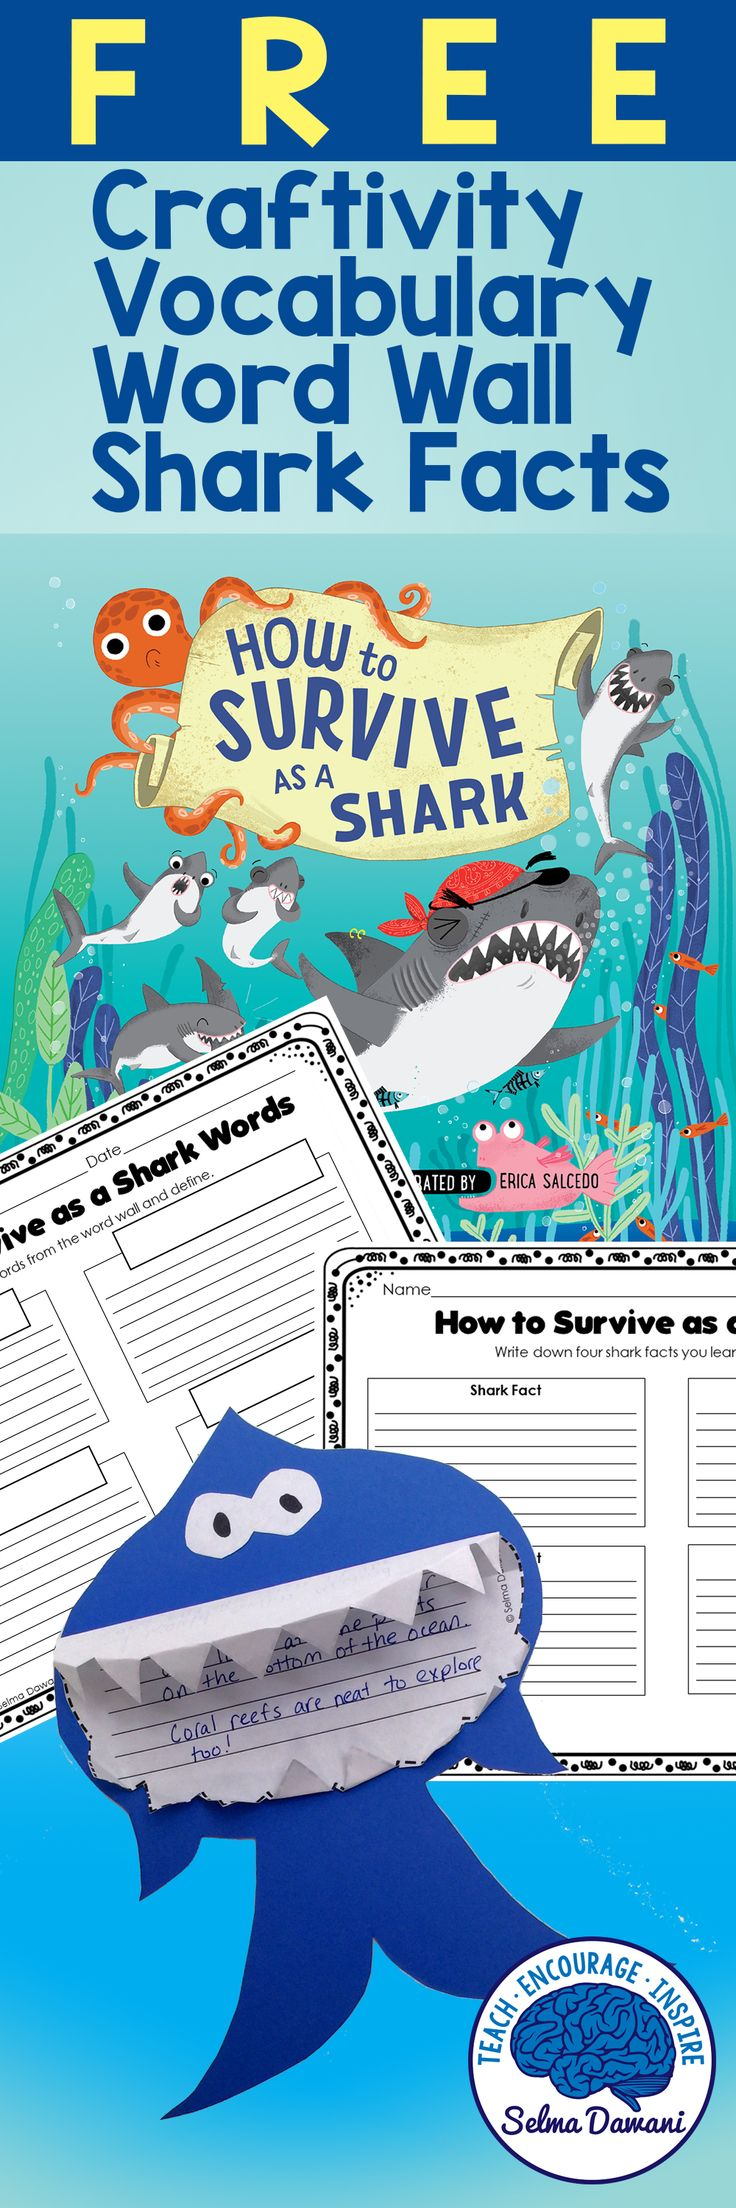 Shark Week Activities for kids - shark vocabulary, shark facts, shark craftivity. Goes great with the book How to Survive as a Shark